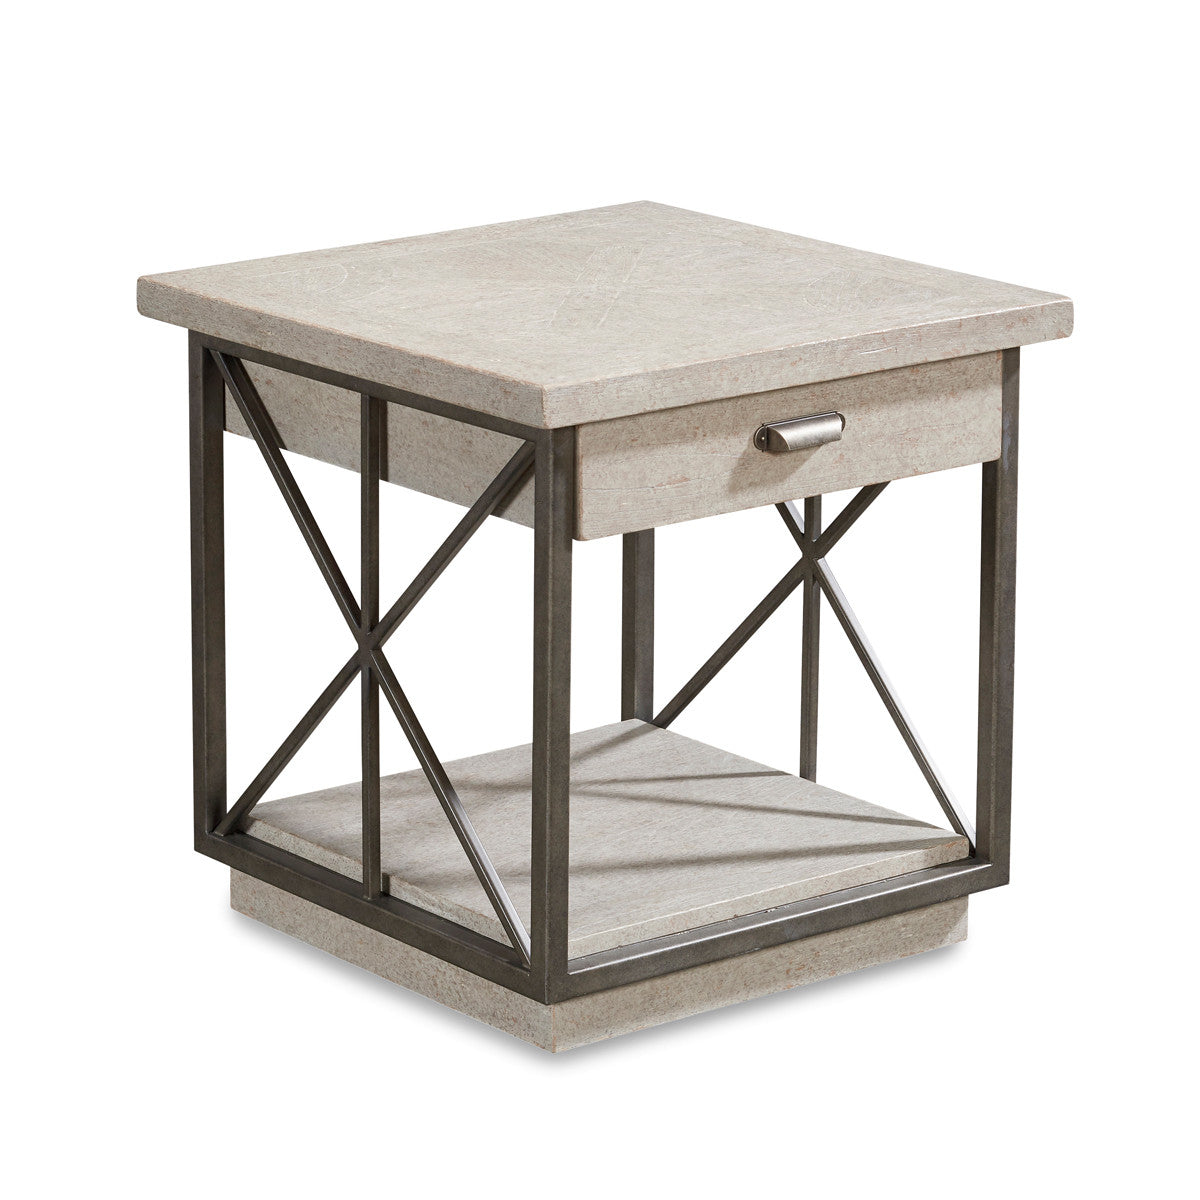 Ordinaire Lansdowne Metal Frame Side Table